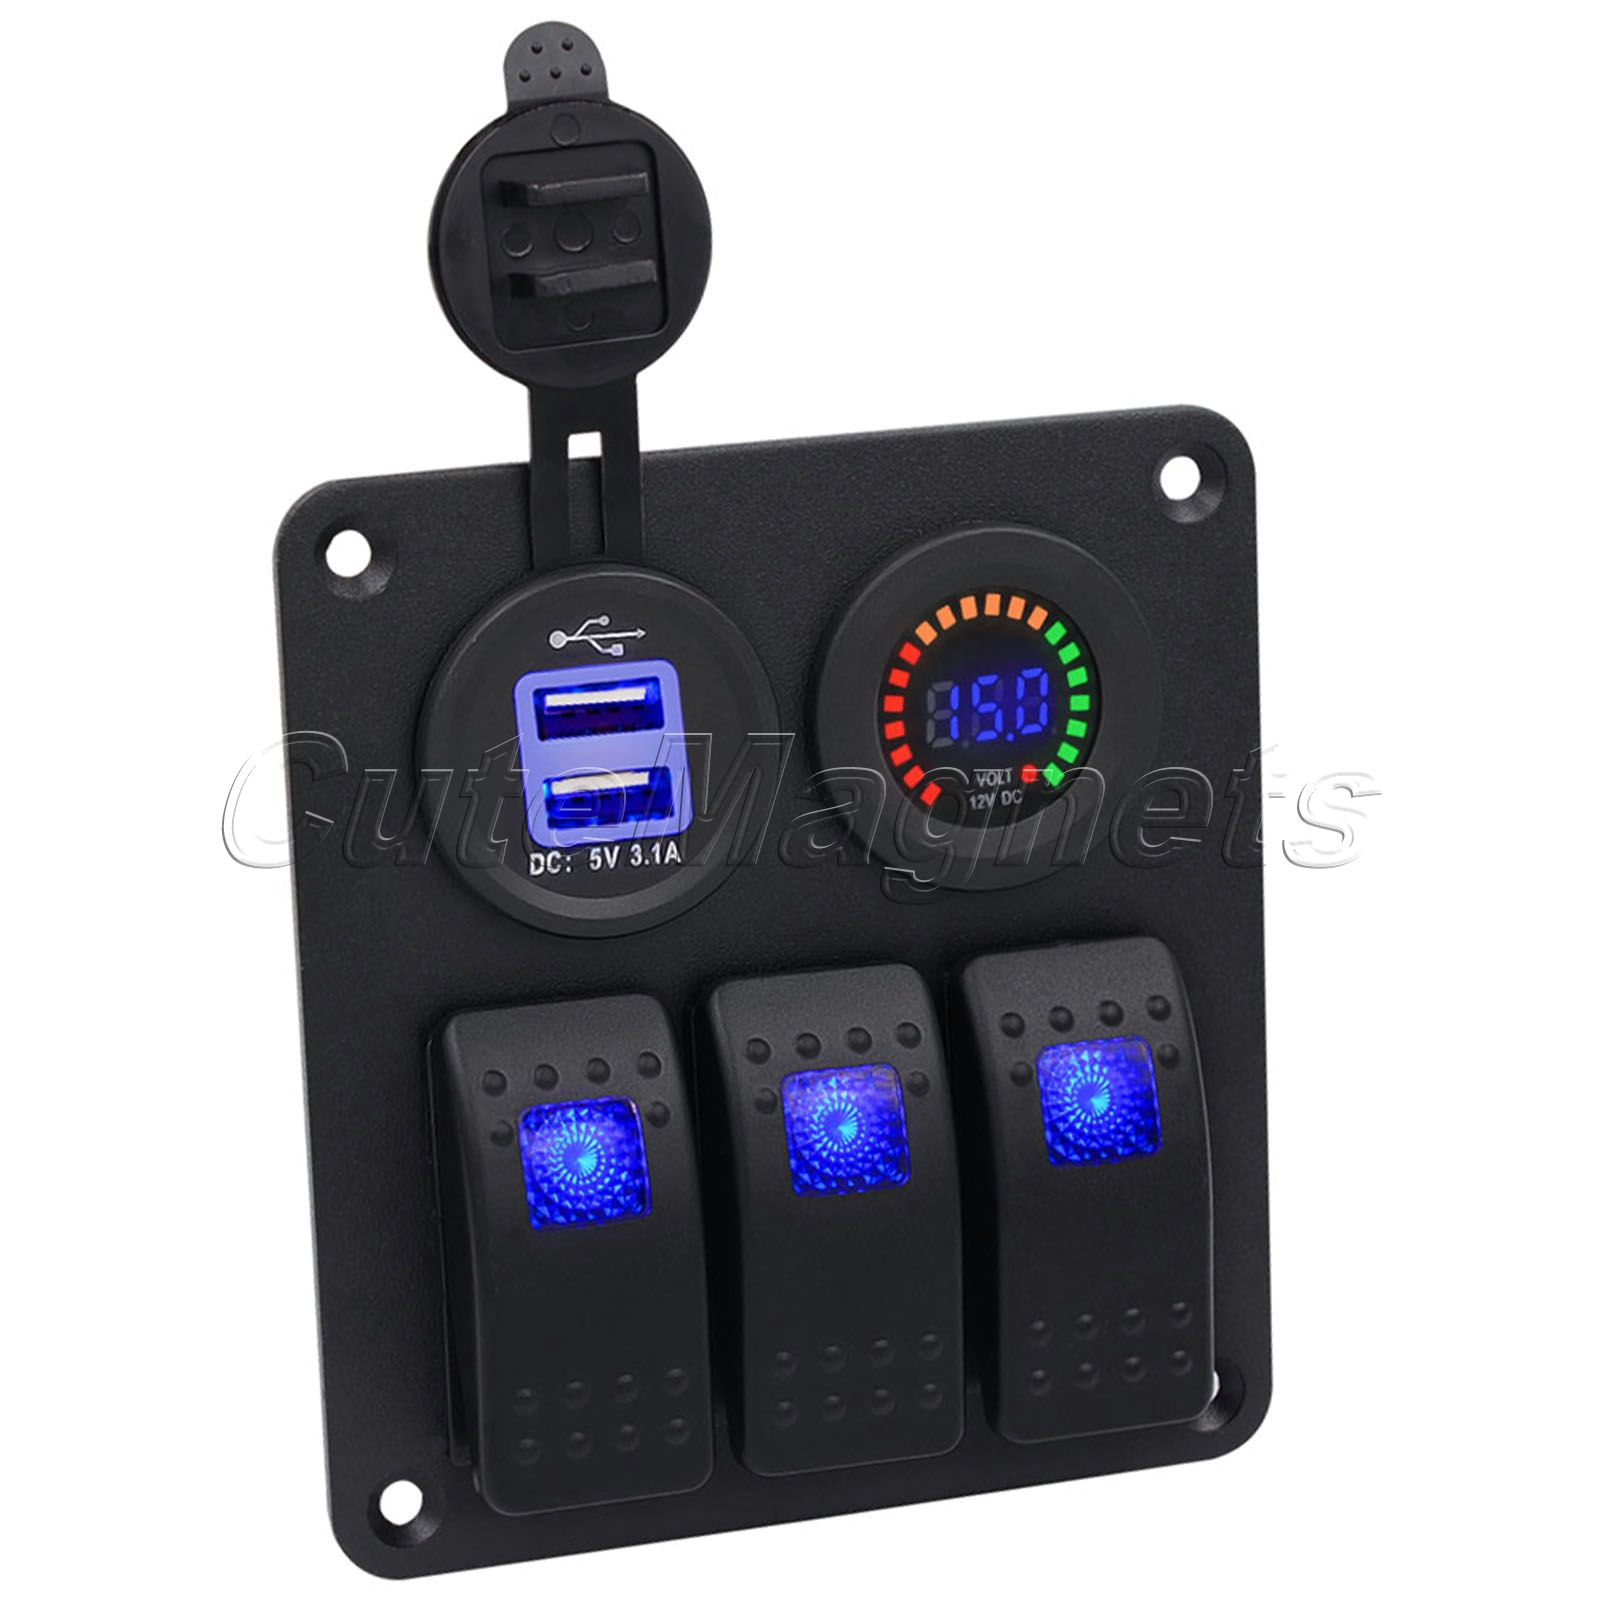 mtsooning 3 Gang Blue Rocker Switch Panel With DC 12V Voltmeter Power Charger Socket for Marine Boat Car RV Double USB 3.1A